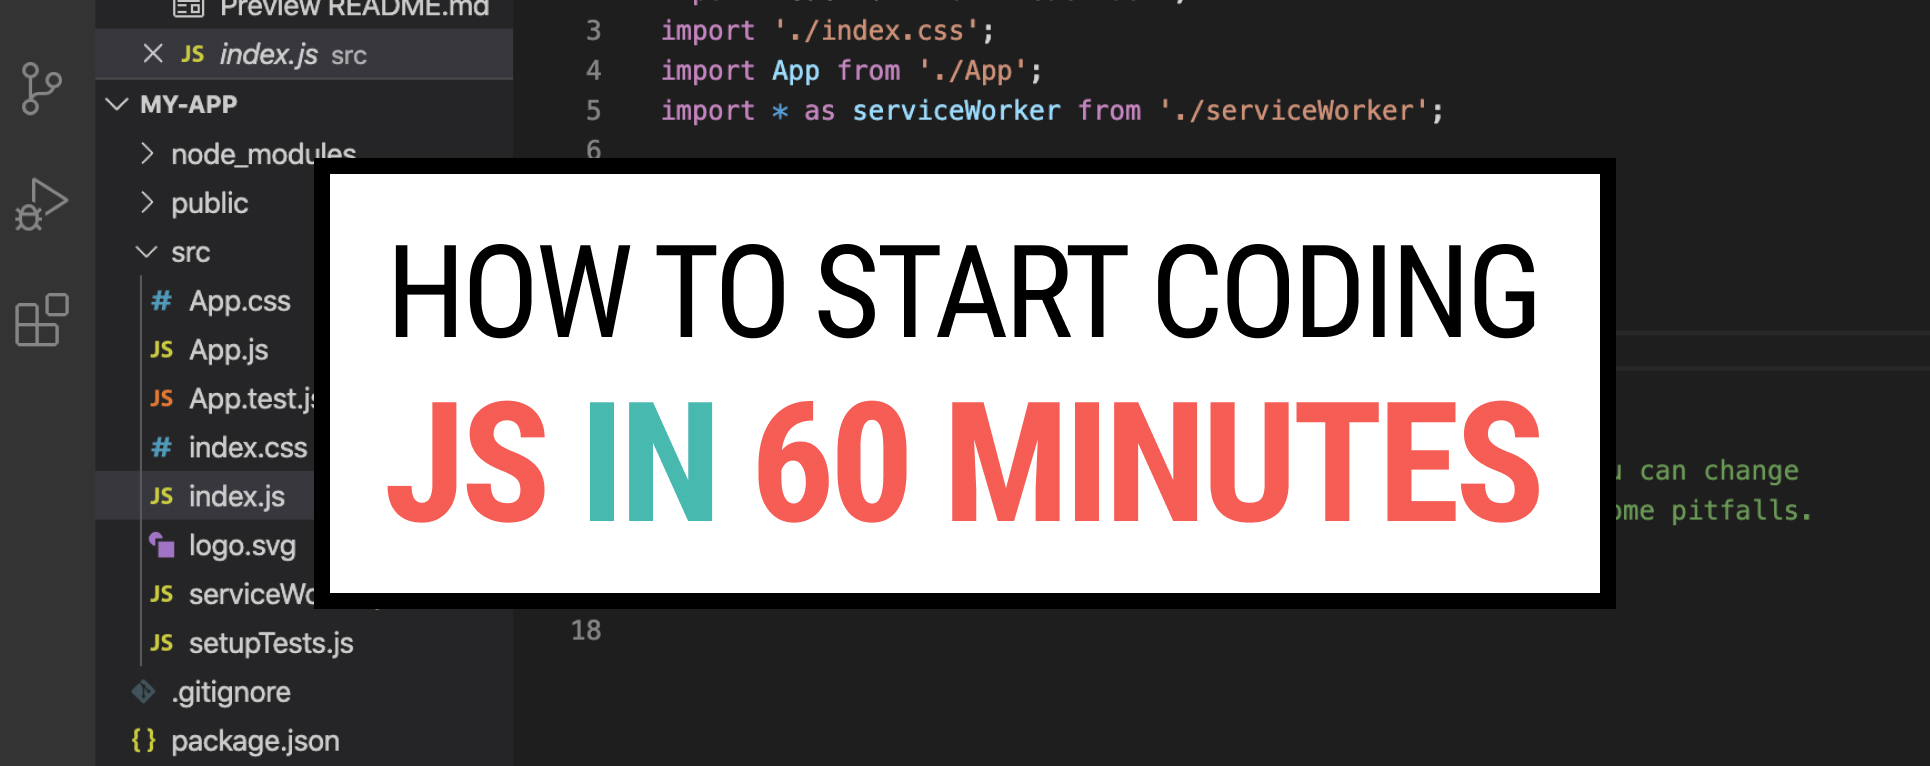 How to start coding JavaScript in 60 minutes